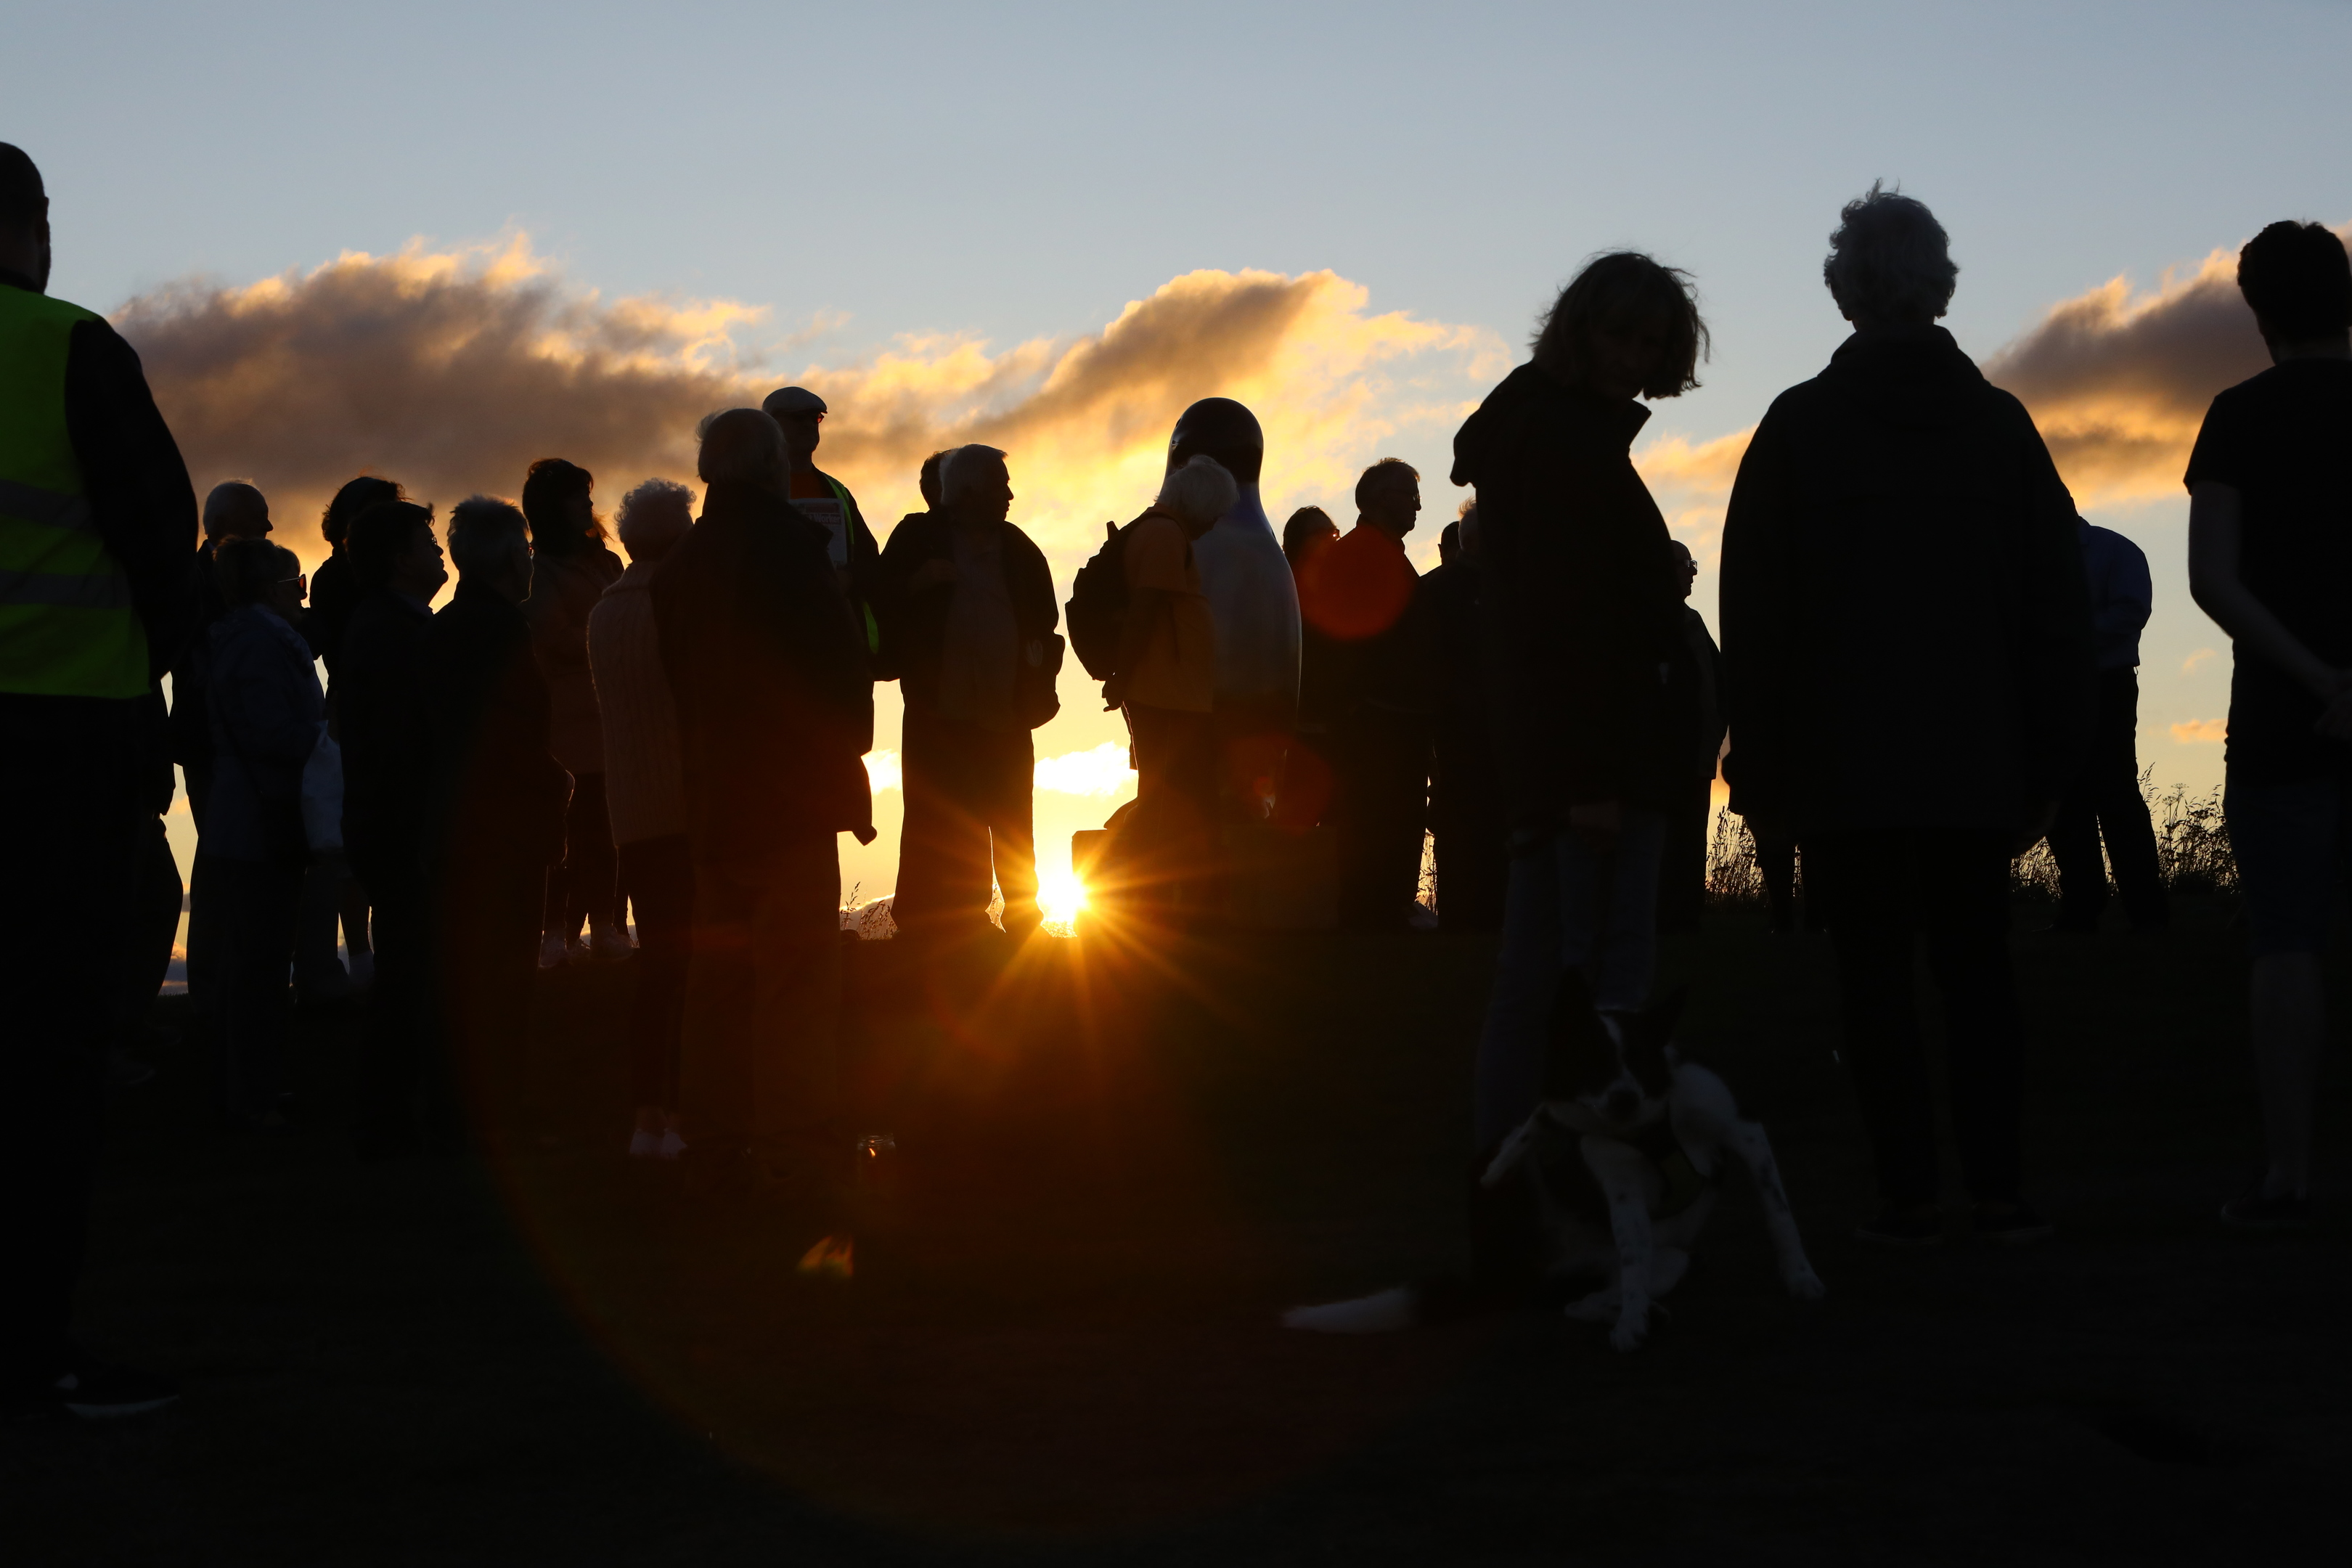 The vigil on Dundee Law.